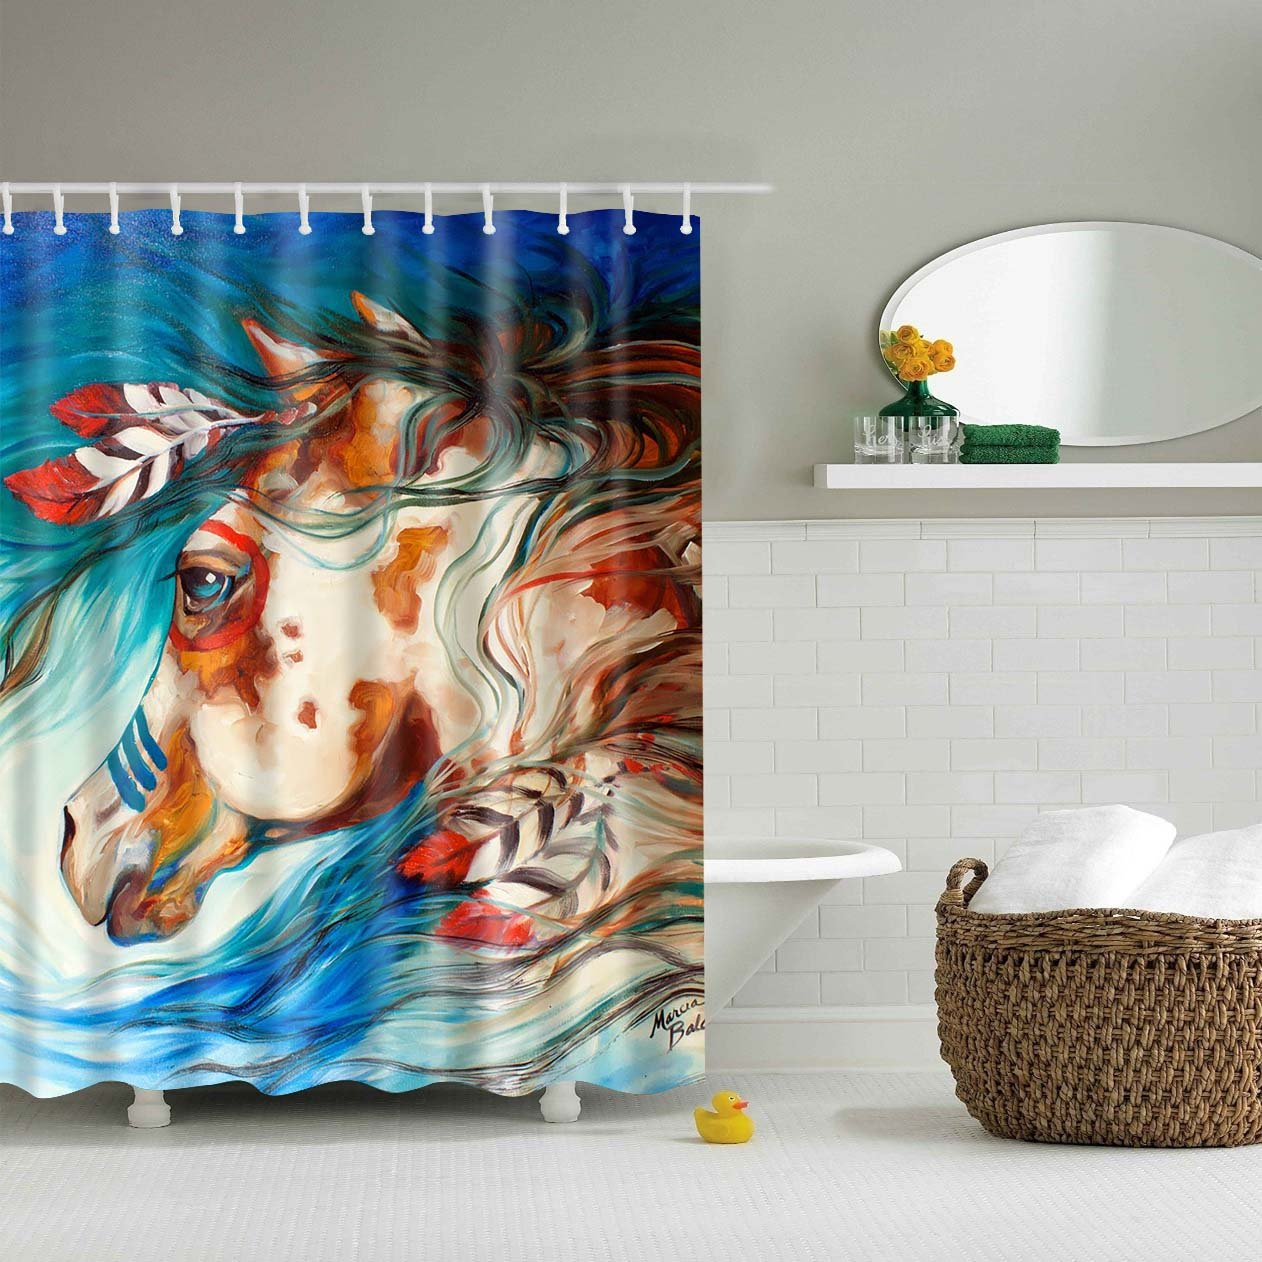 Native American Indians Horses Art Shower Curtain Bathroom Decor Horse Shower Curtain Boho Shower Curtain